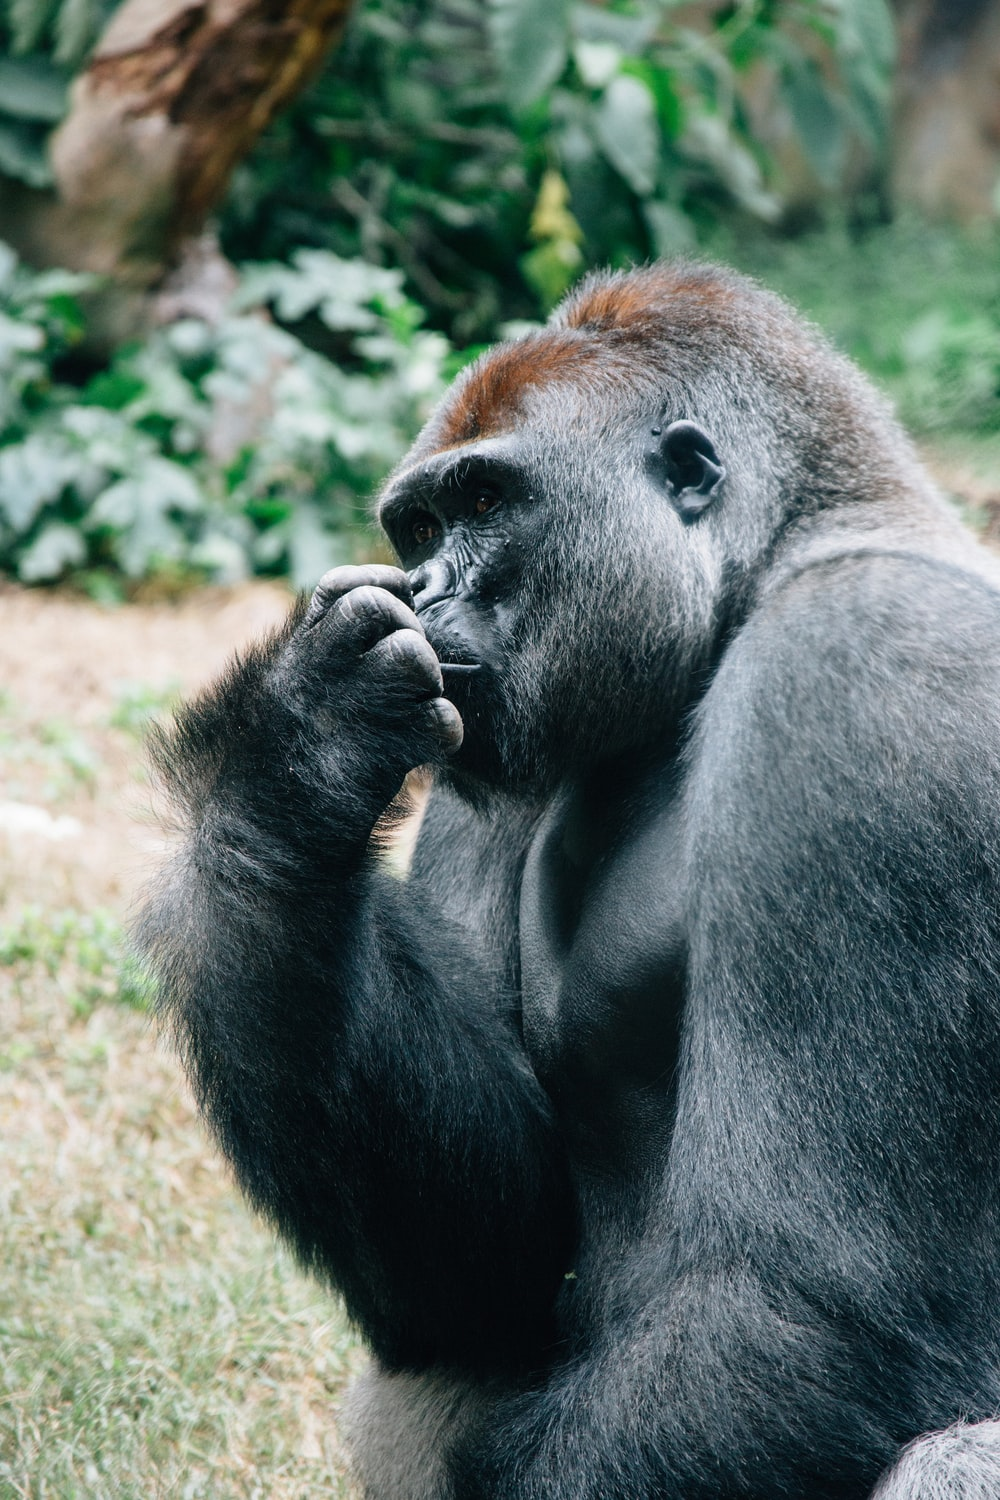 gorilla picking nose in the field